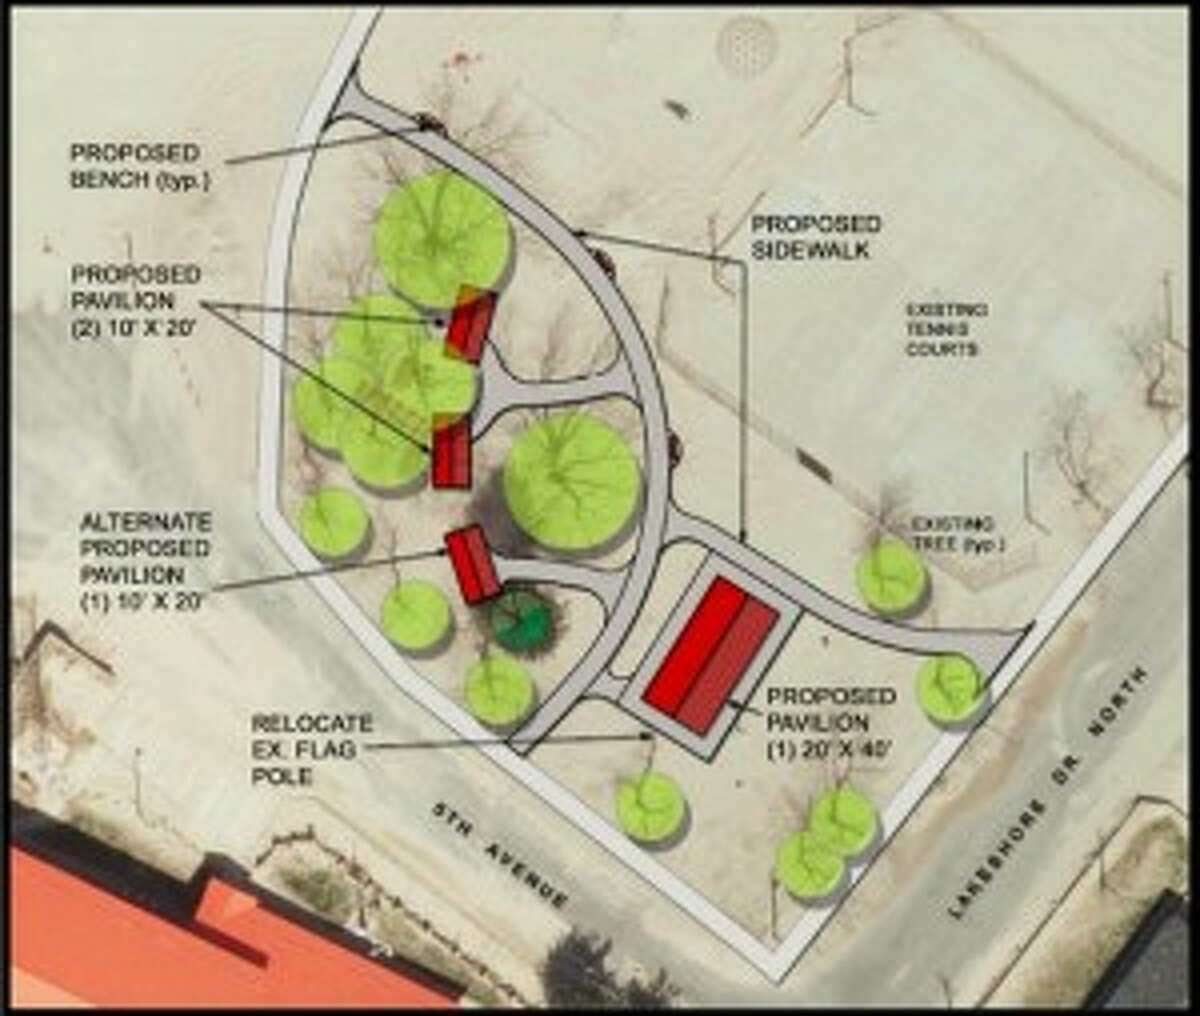 City of Manistee engineer of record has completed preliminary designs of a park for Fifth Avenue Beach.